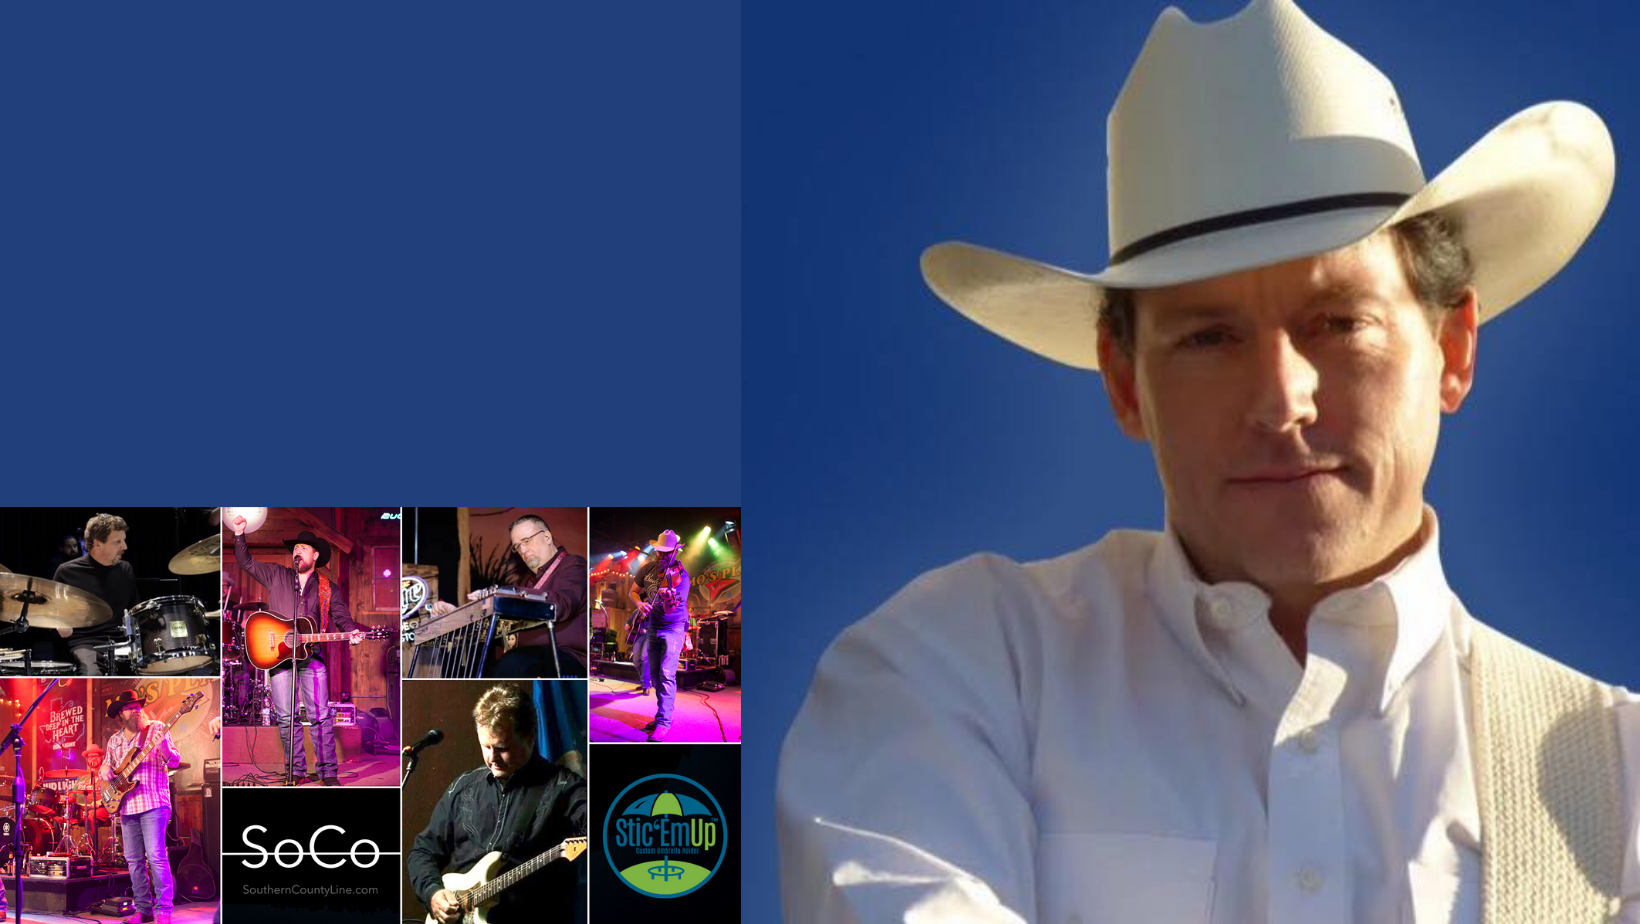 24th of July Celebration - Country Tribute Band - George